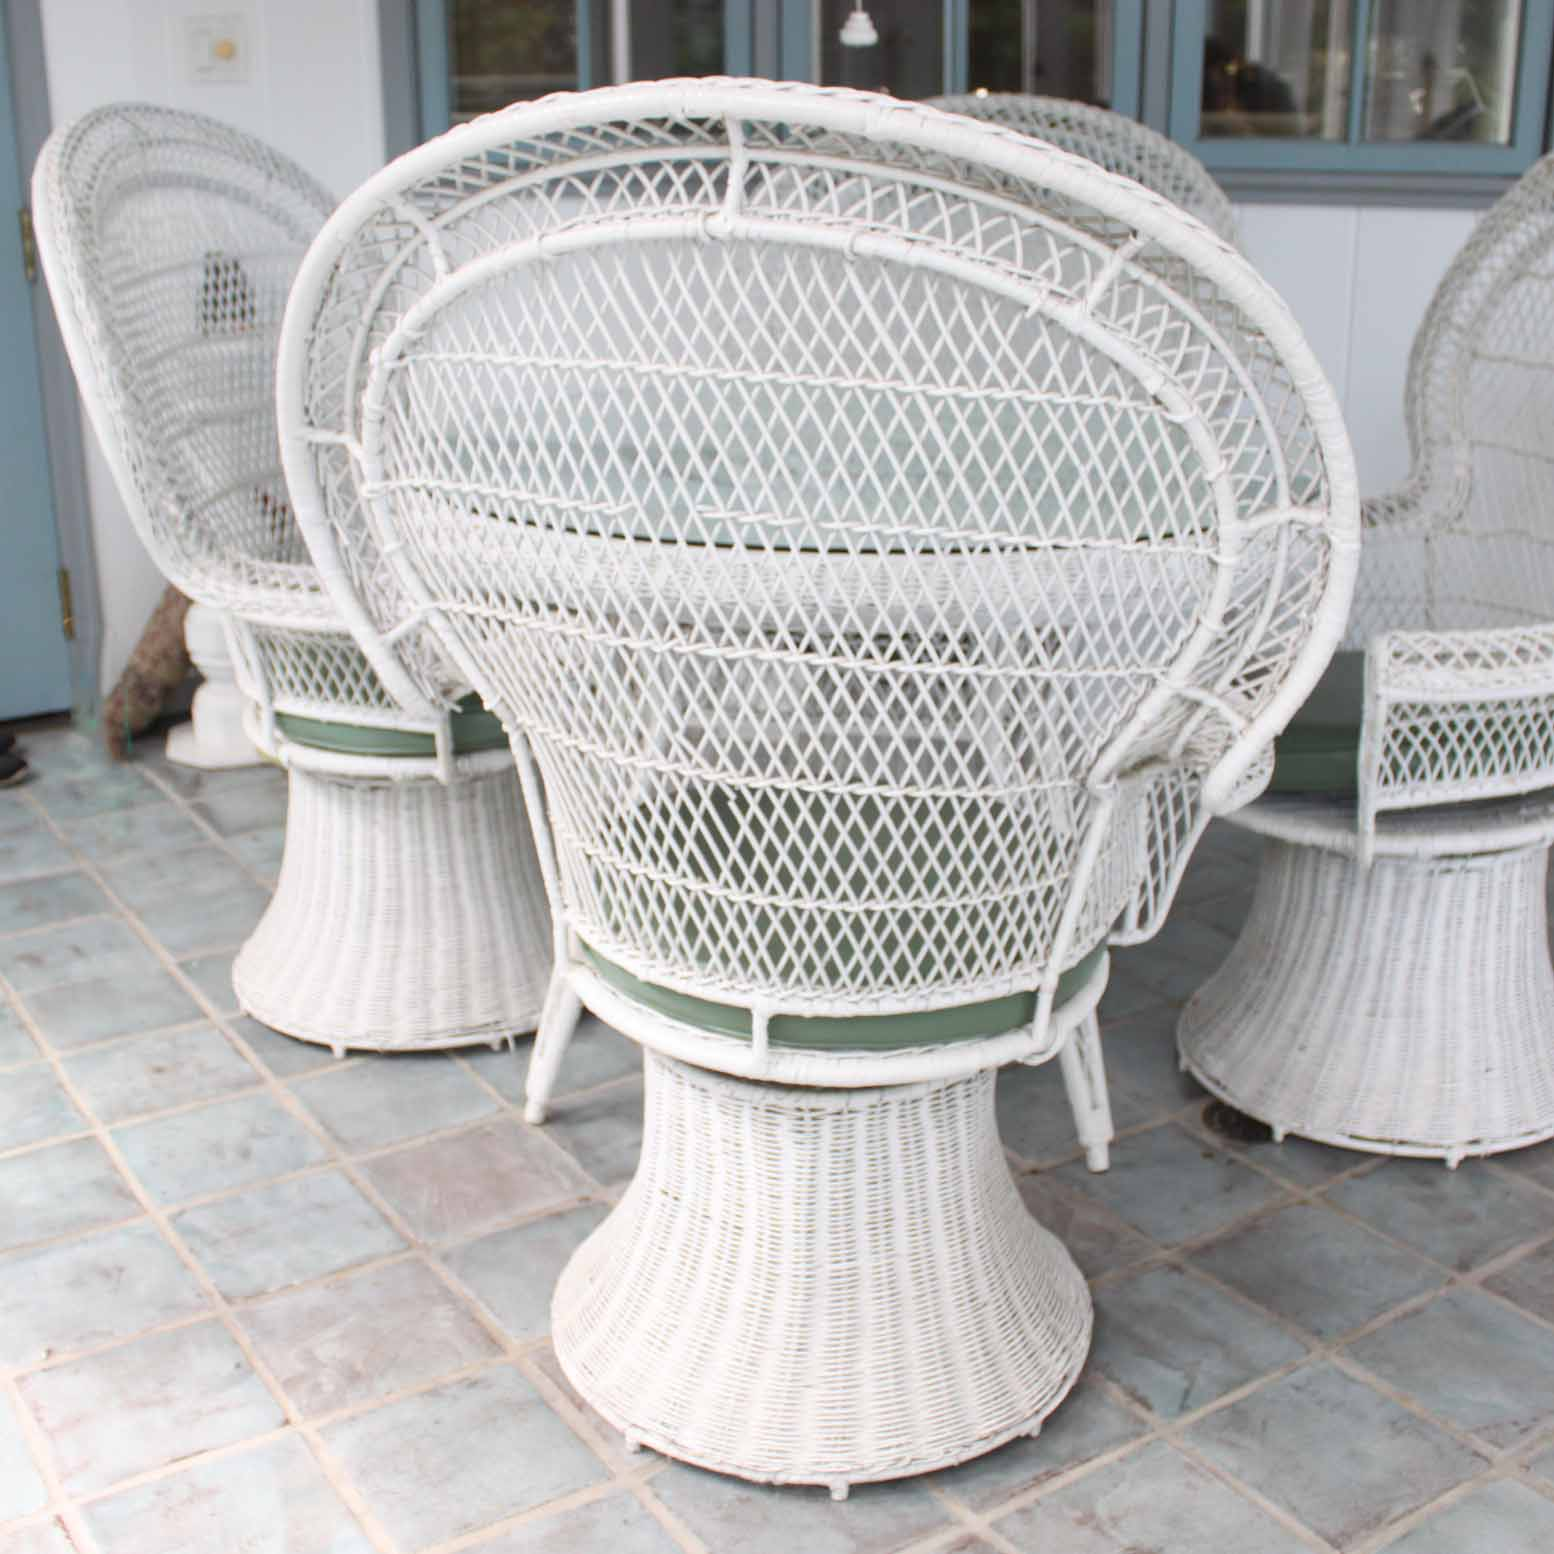 white wicker chairs and table 2 vintage patio lantern ebth